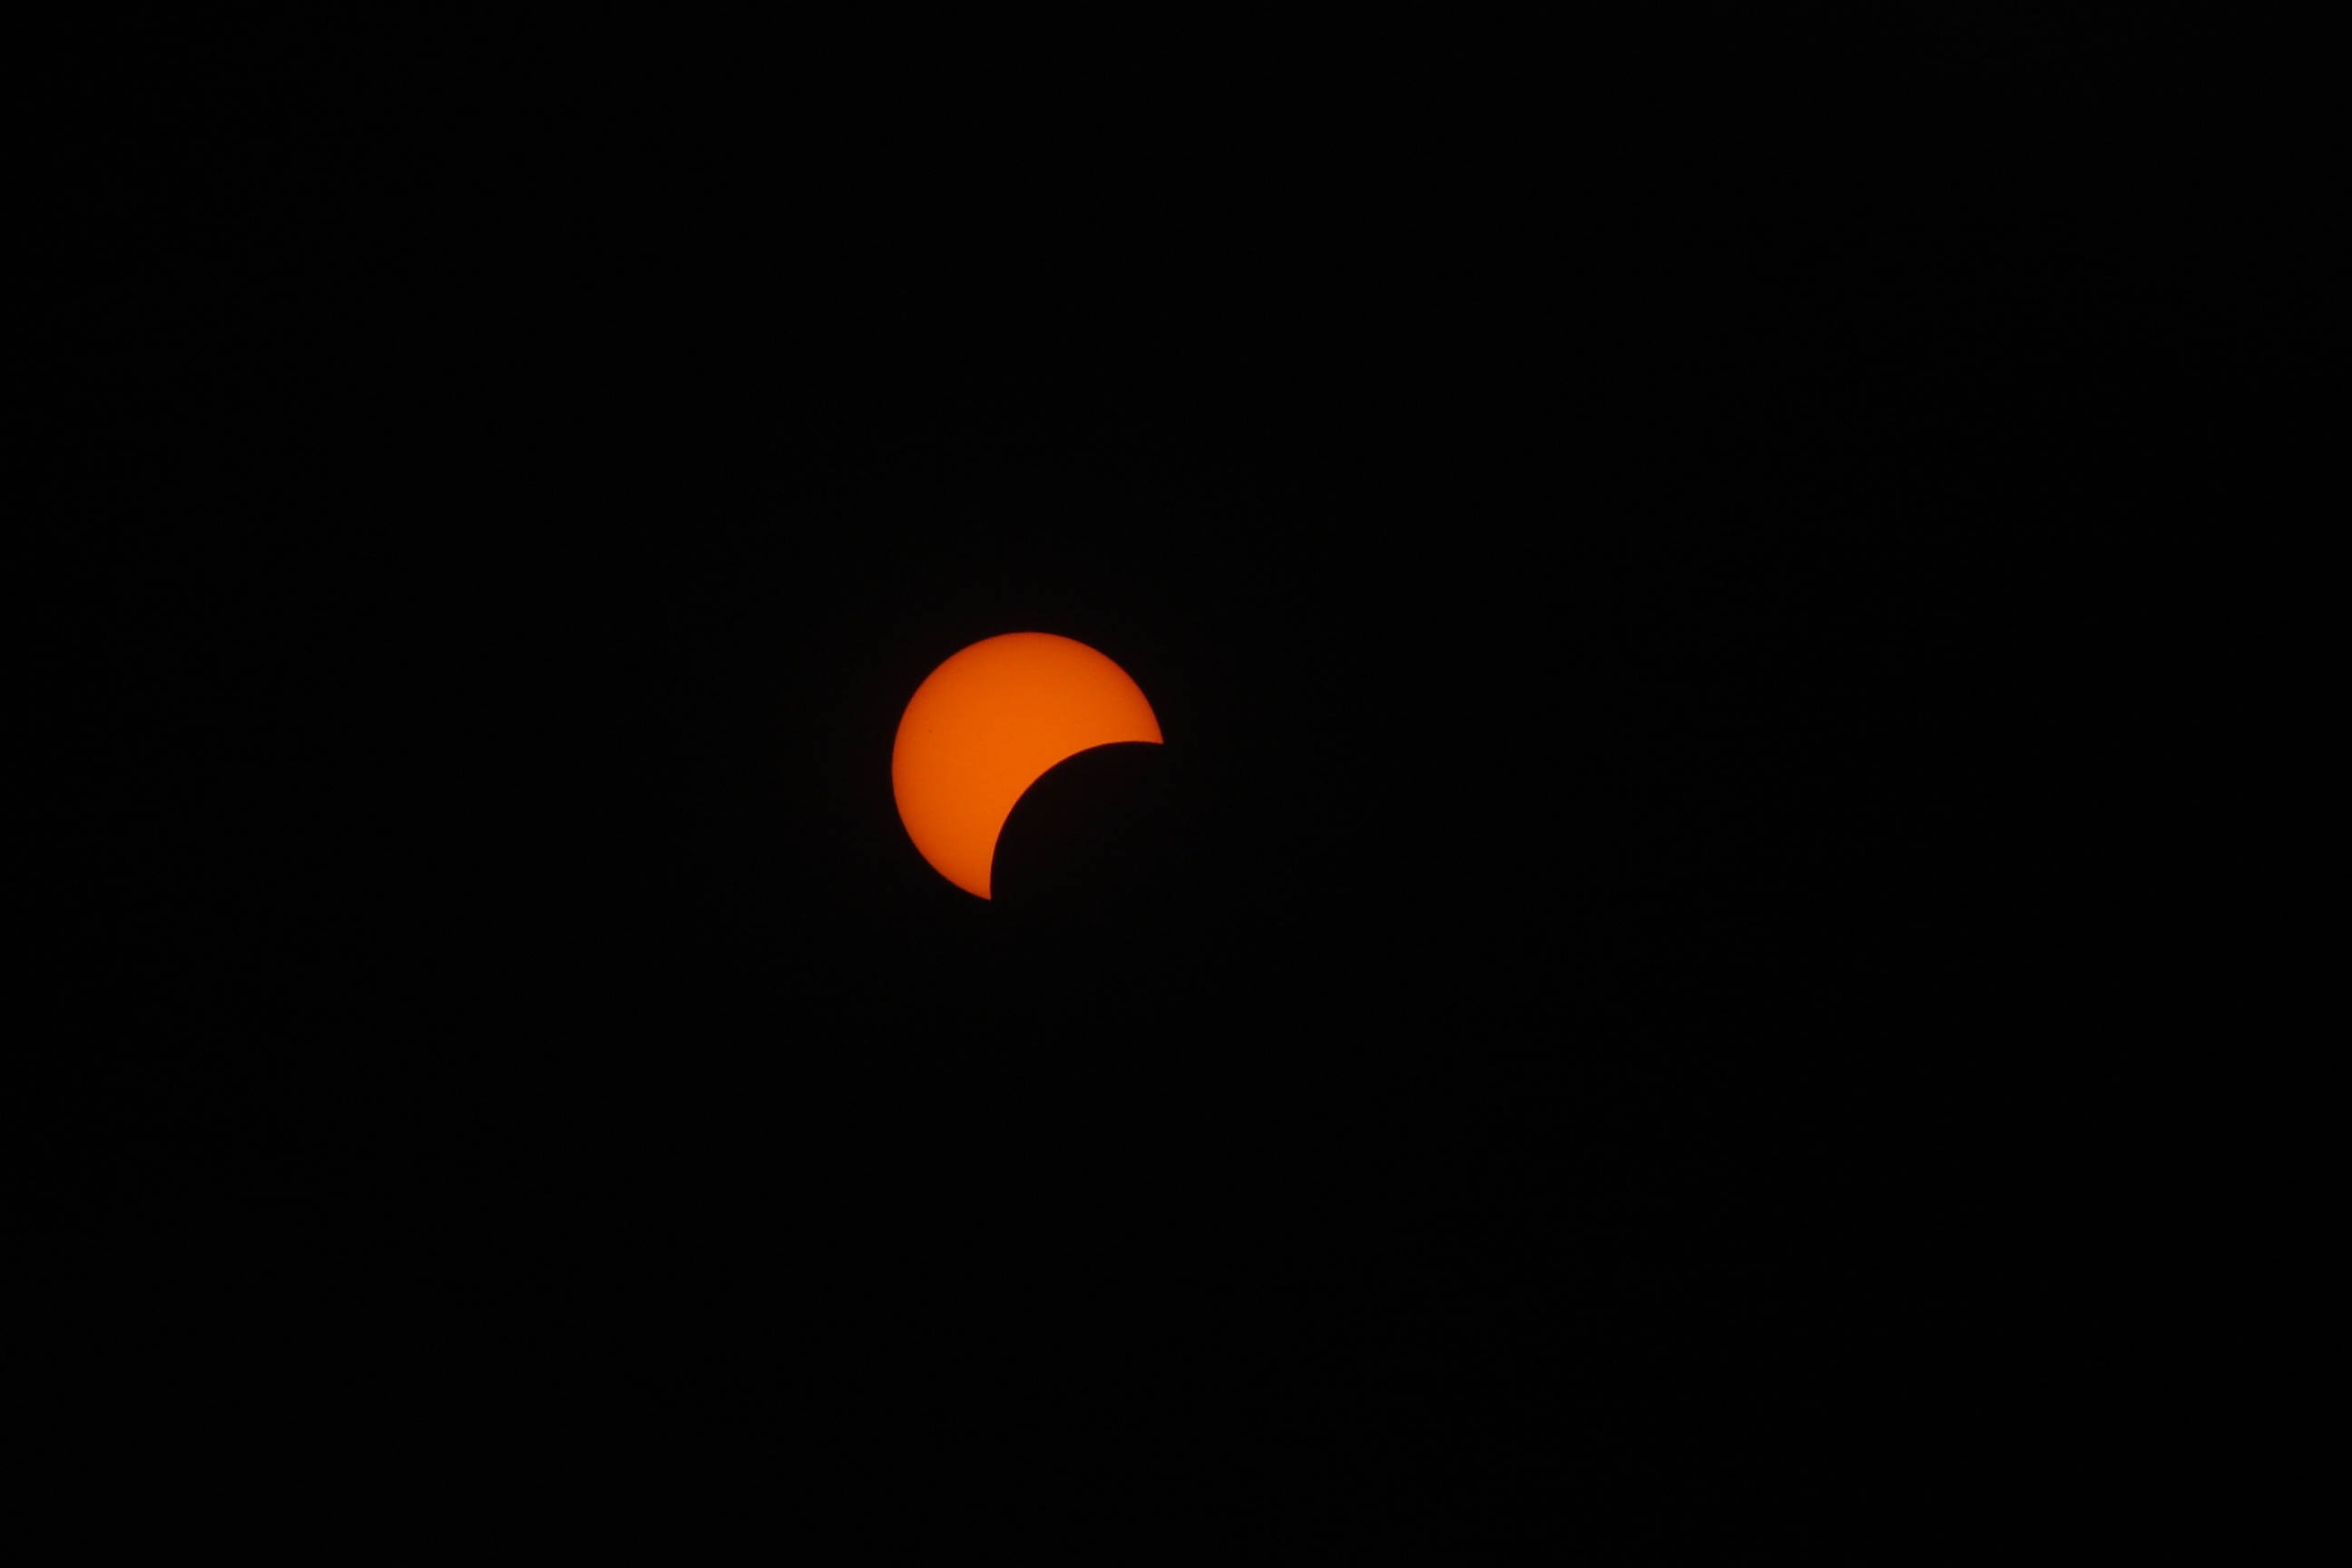 The moon starting to eclipse